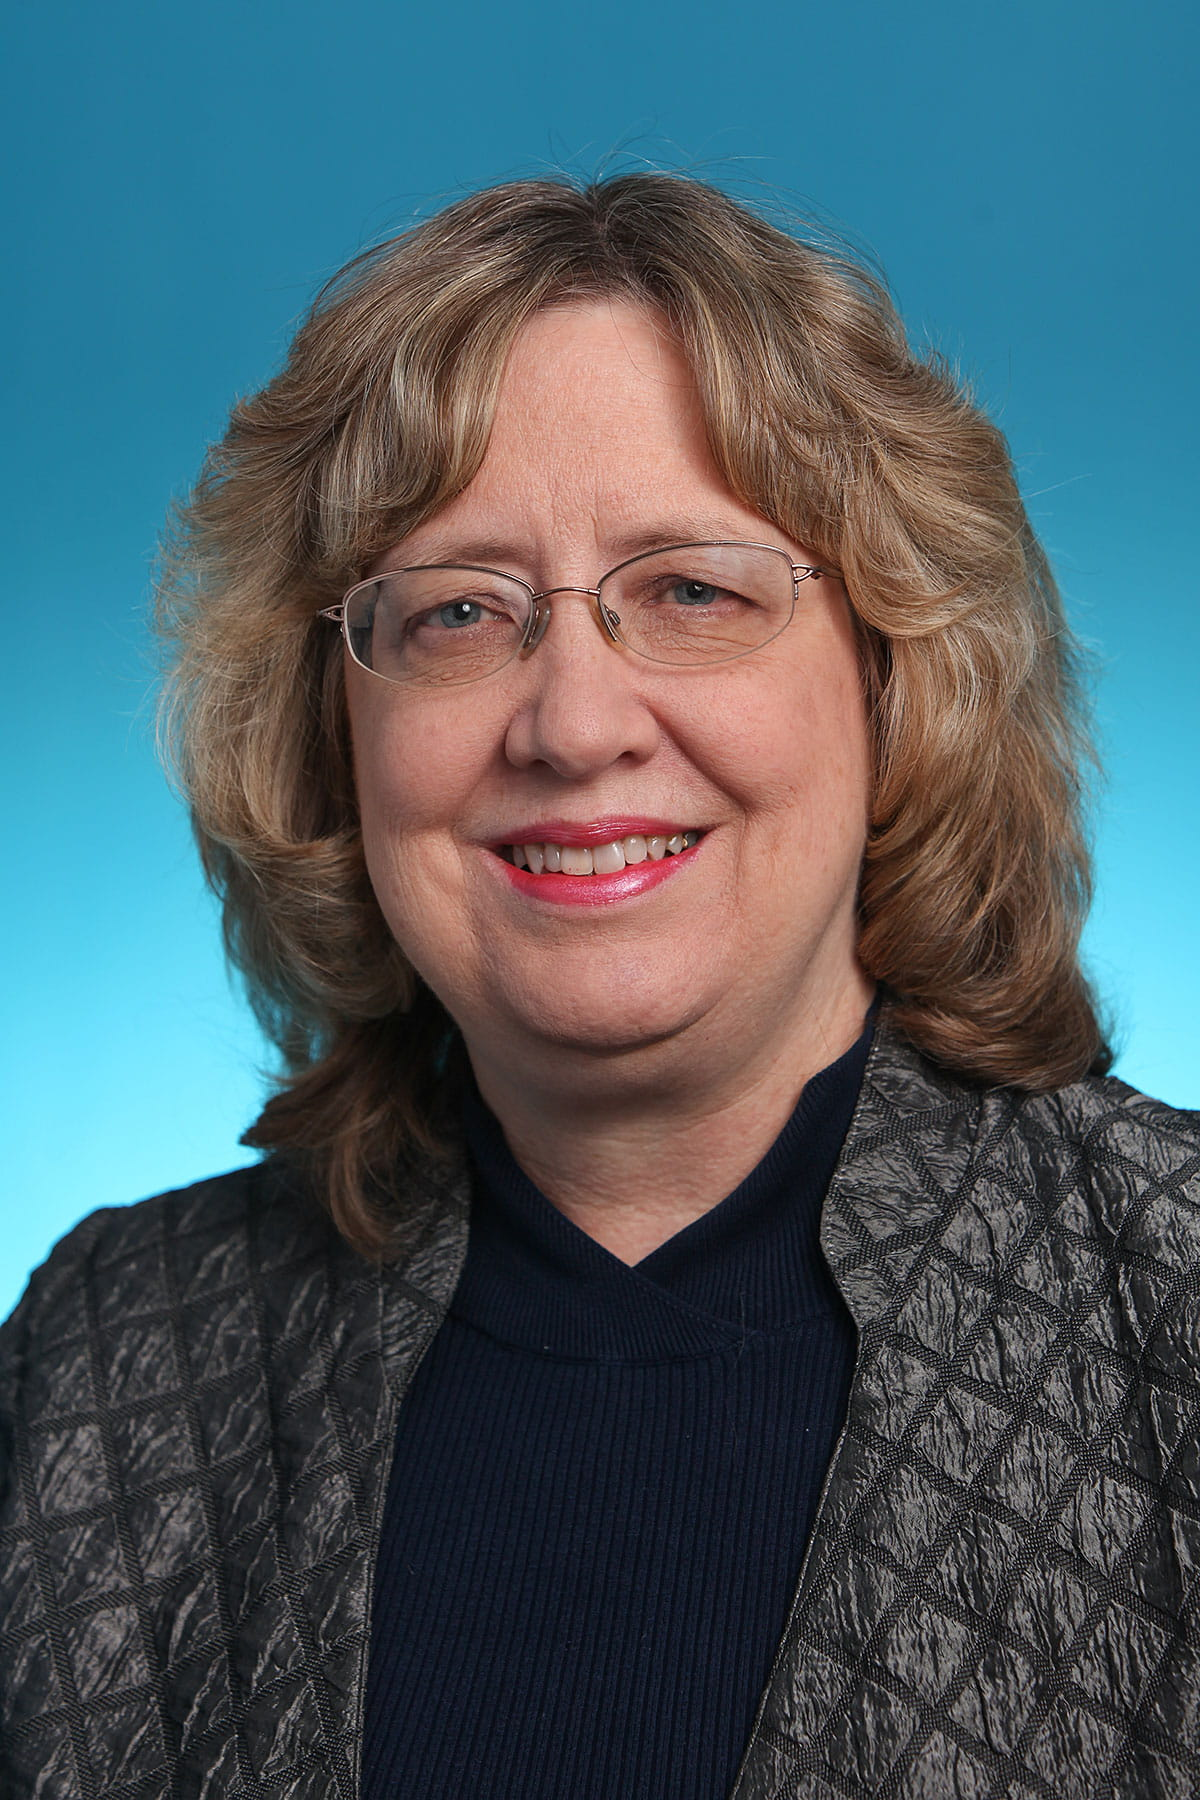 Elizabeth K. Schorry, MD